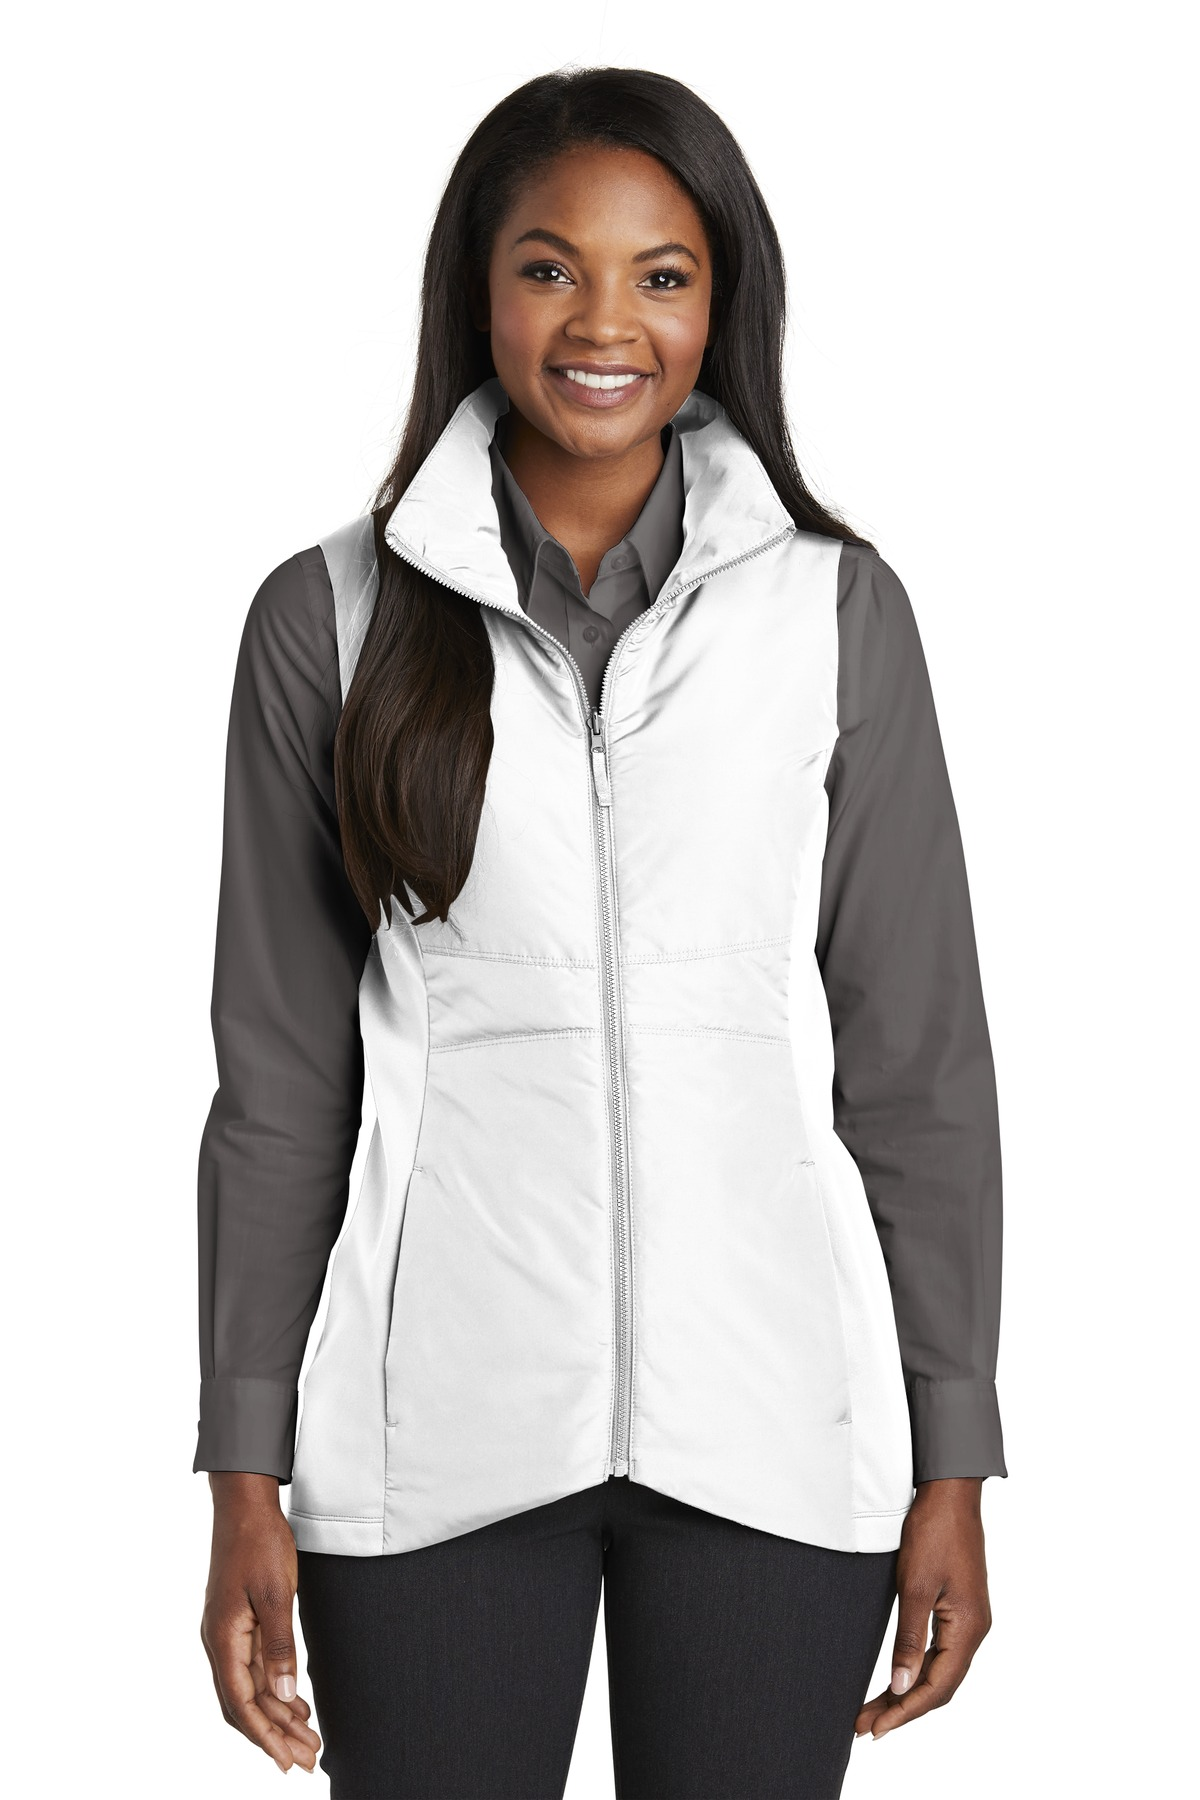 e09ad9643f Outerwear - Insulated Jackets - Apparel - Transfer Express